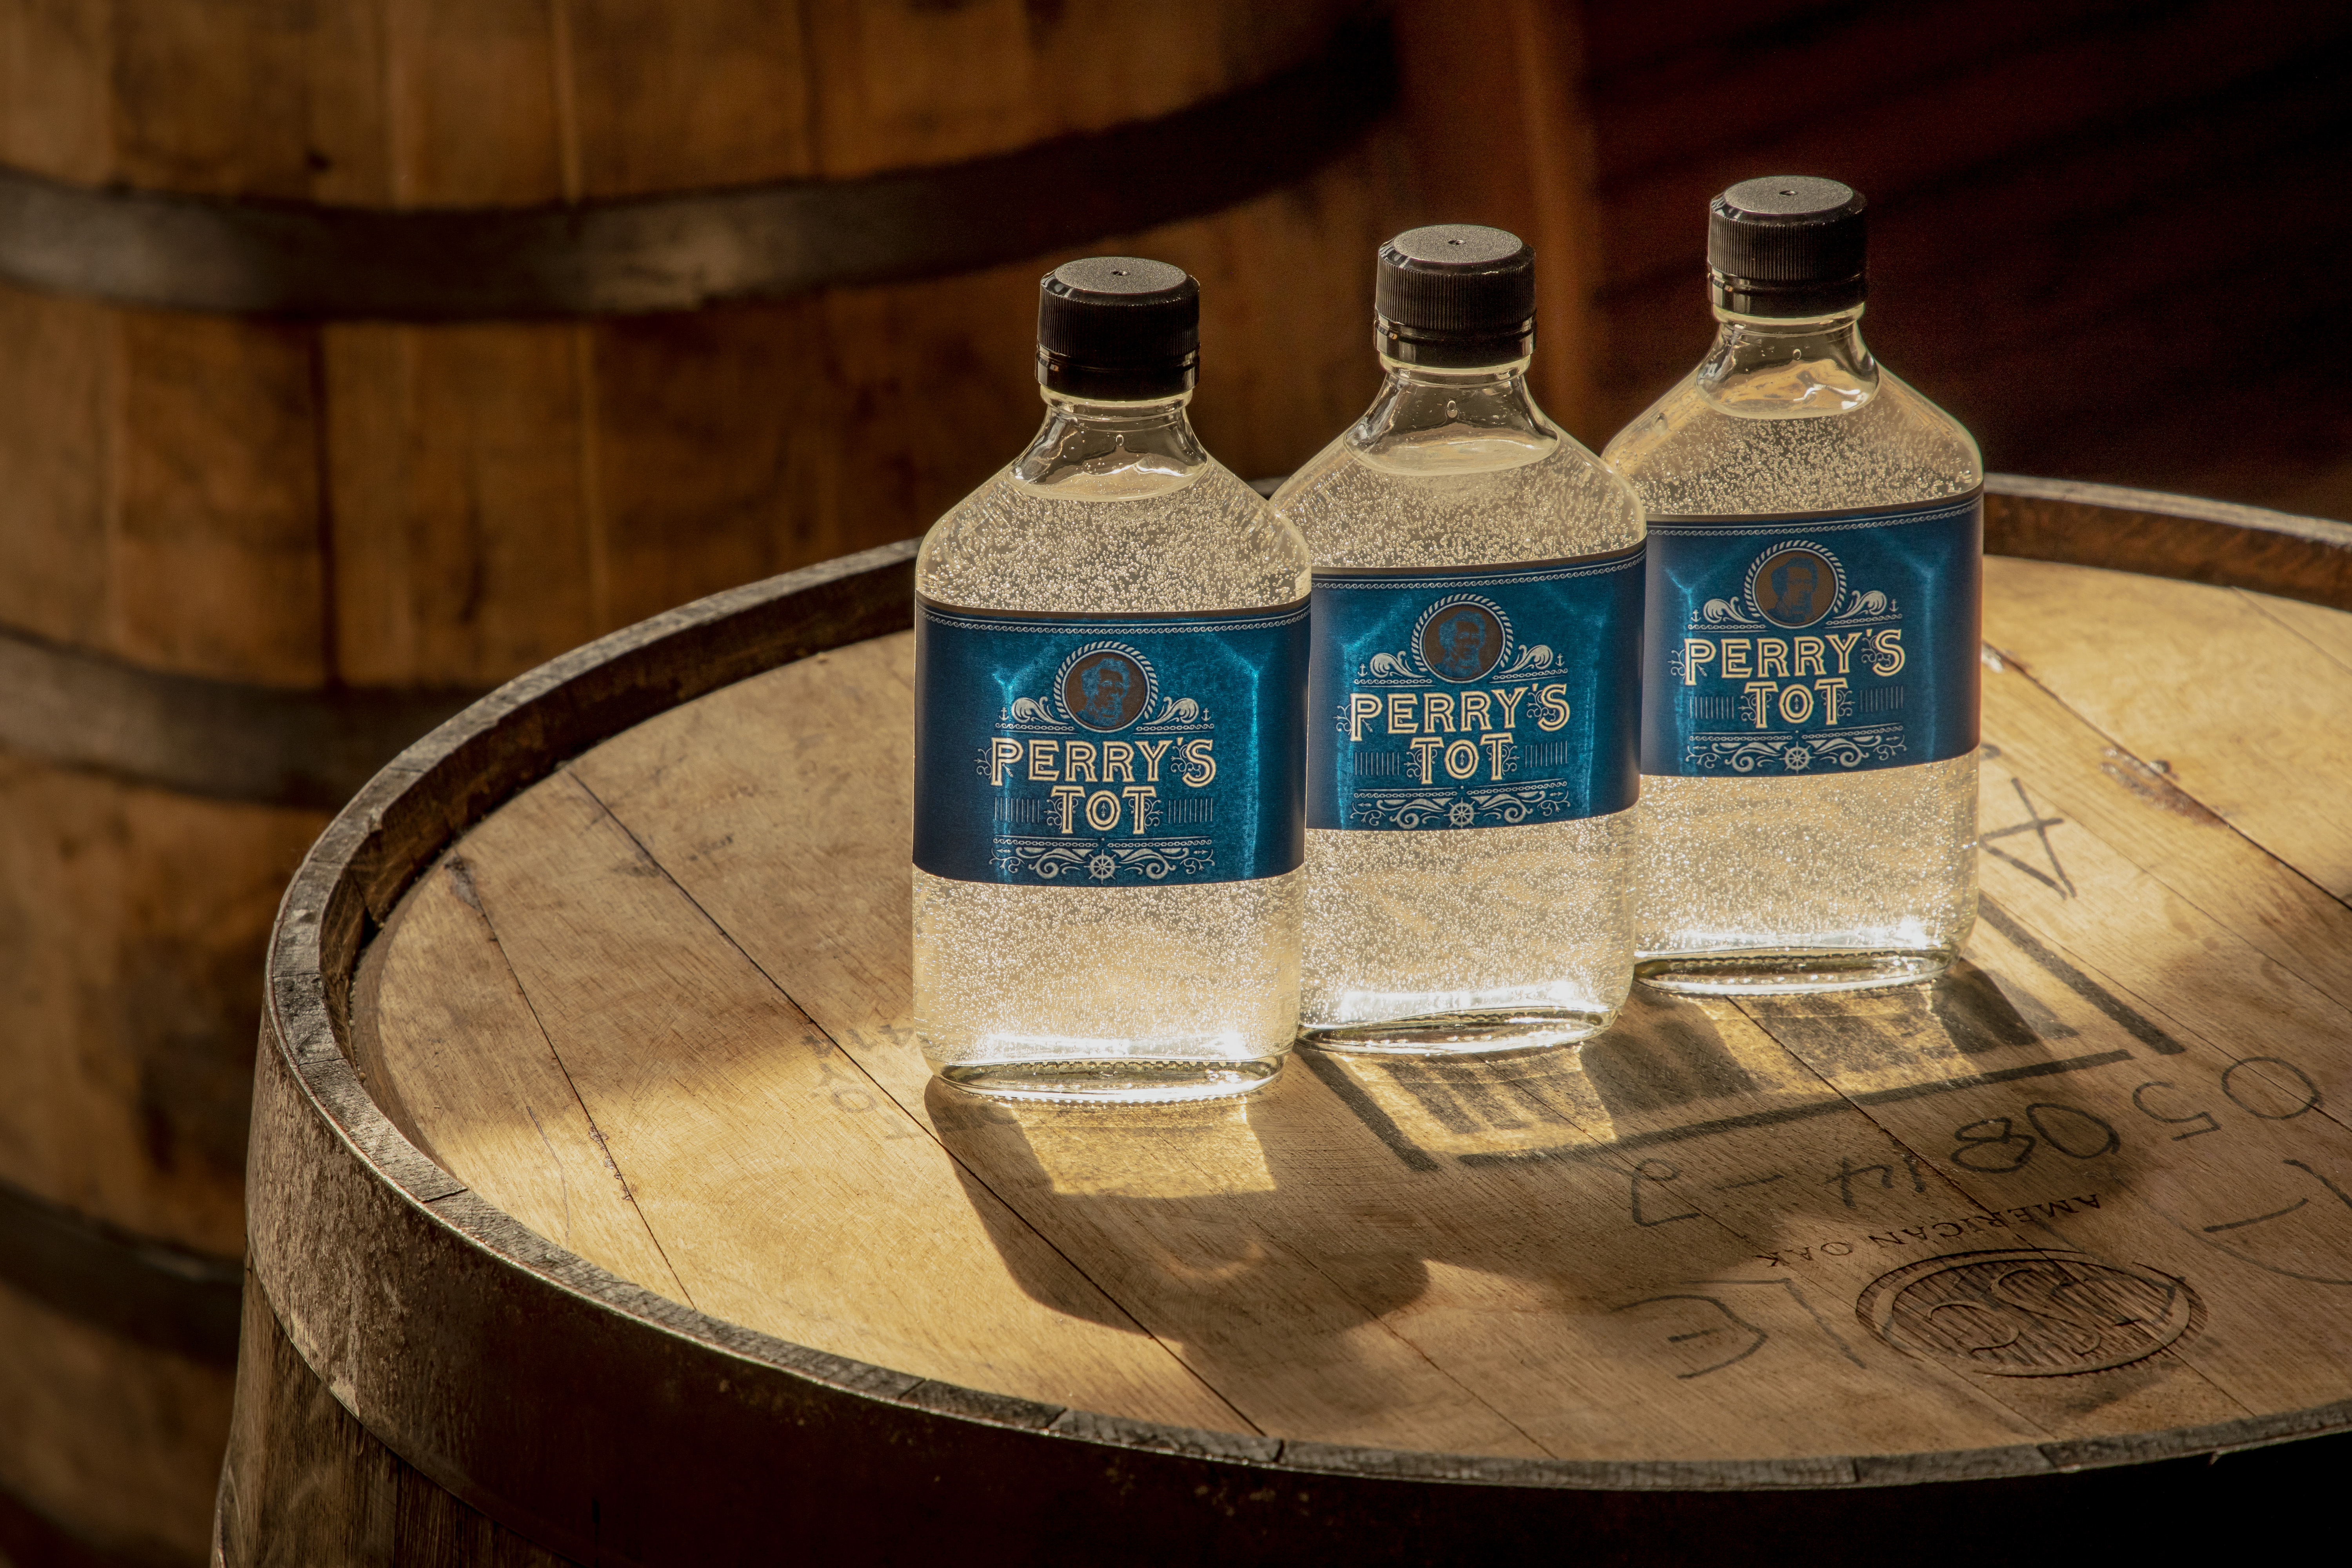 Hand sanitizer in glass flasks produced at New York Distilling Co.